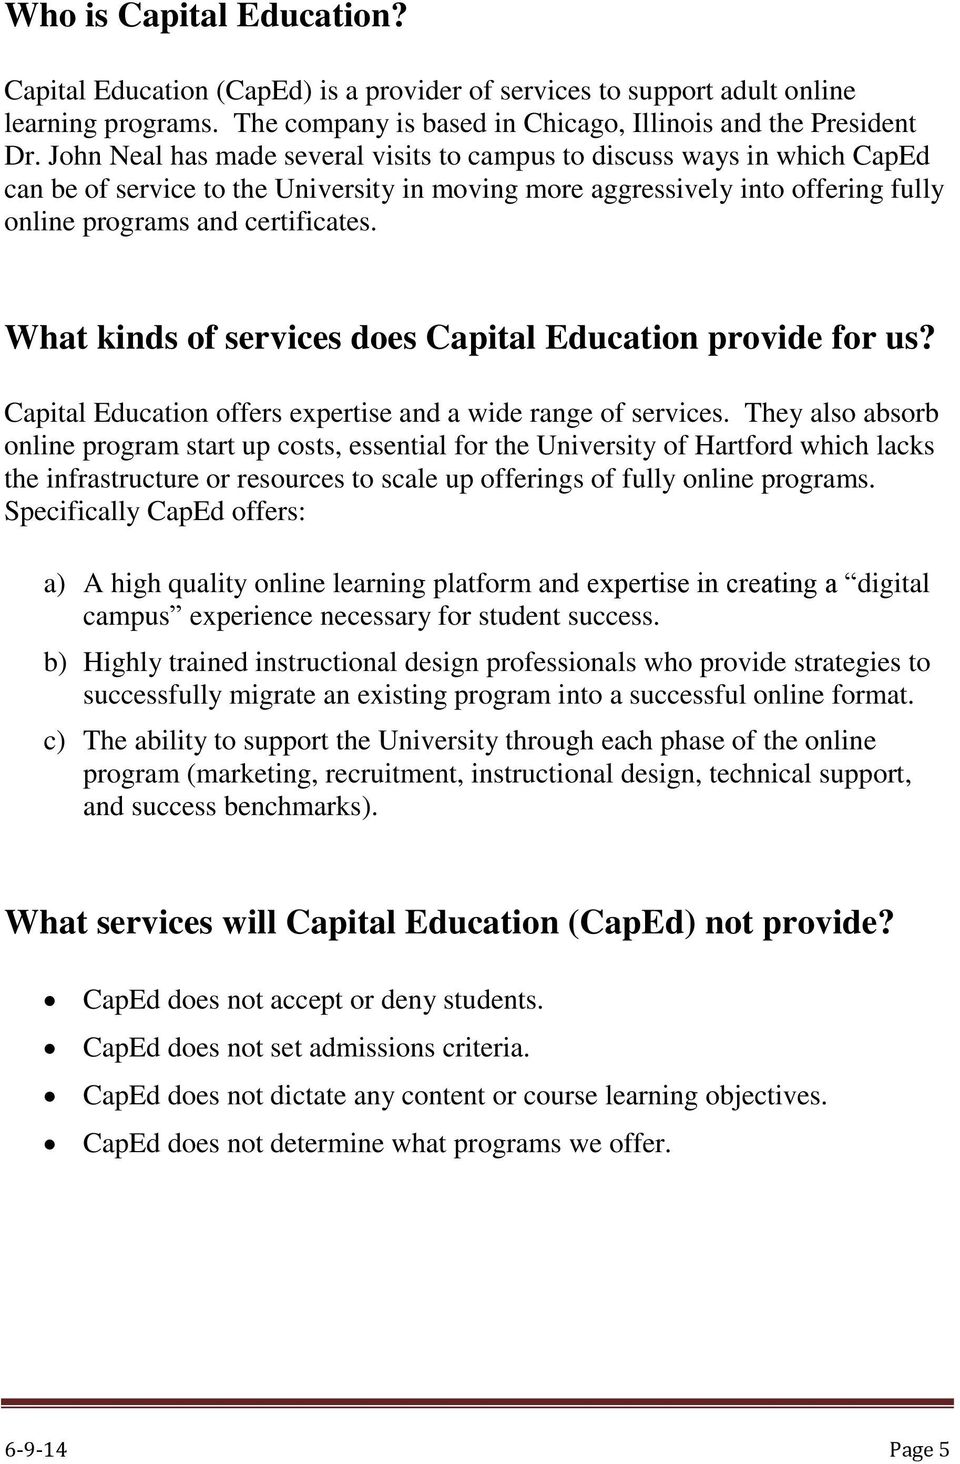 What kinds of services does Capital Education provide for us? Capital Education offers expertise and a wide range of services.